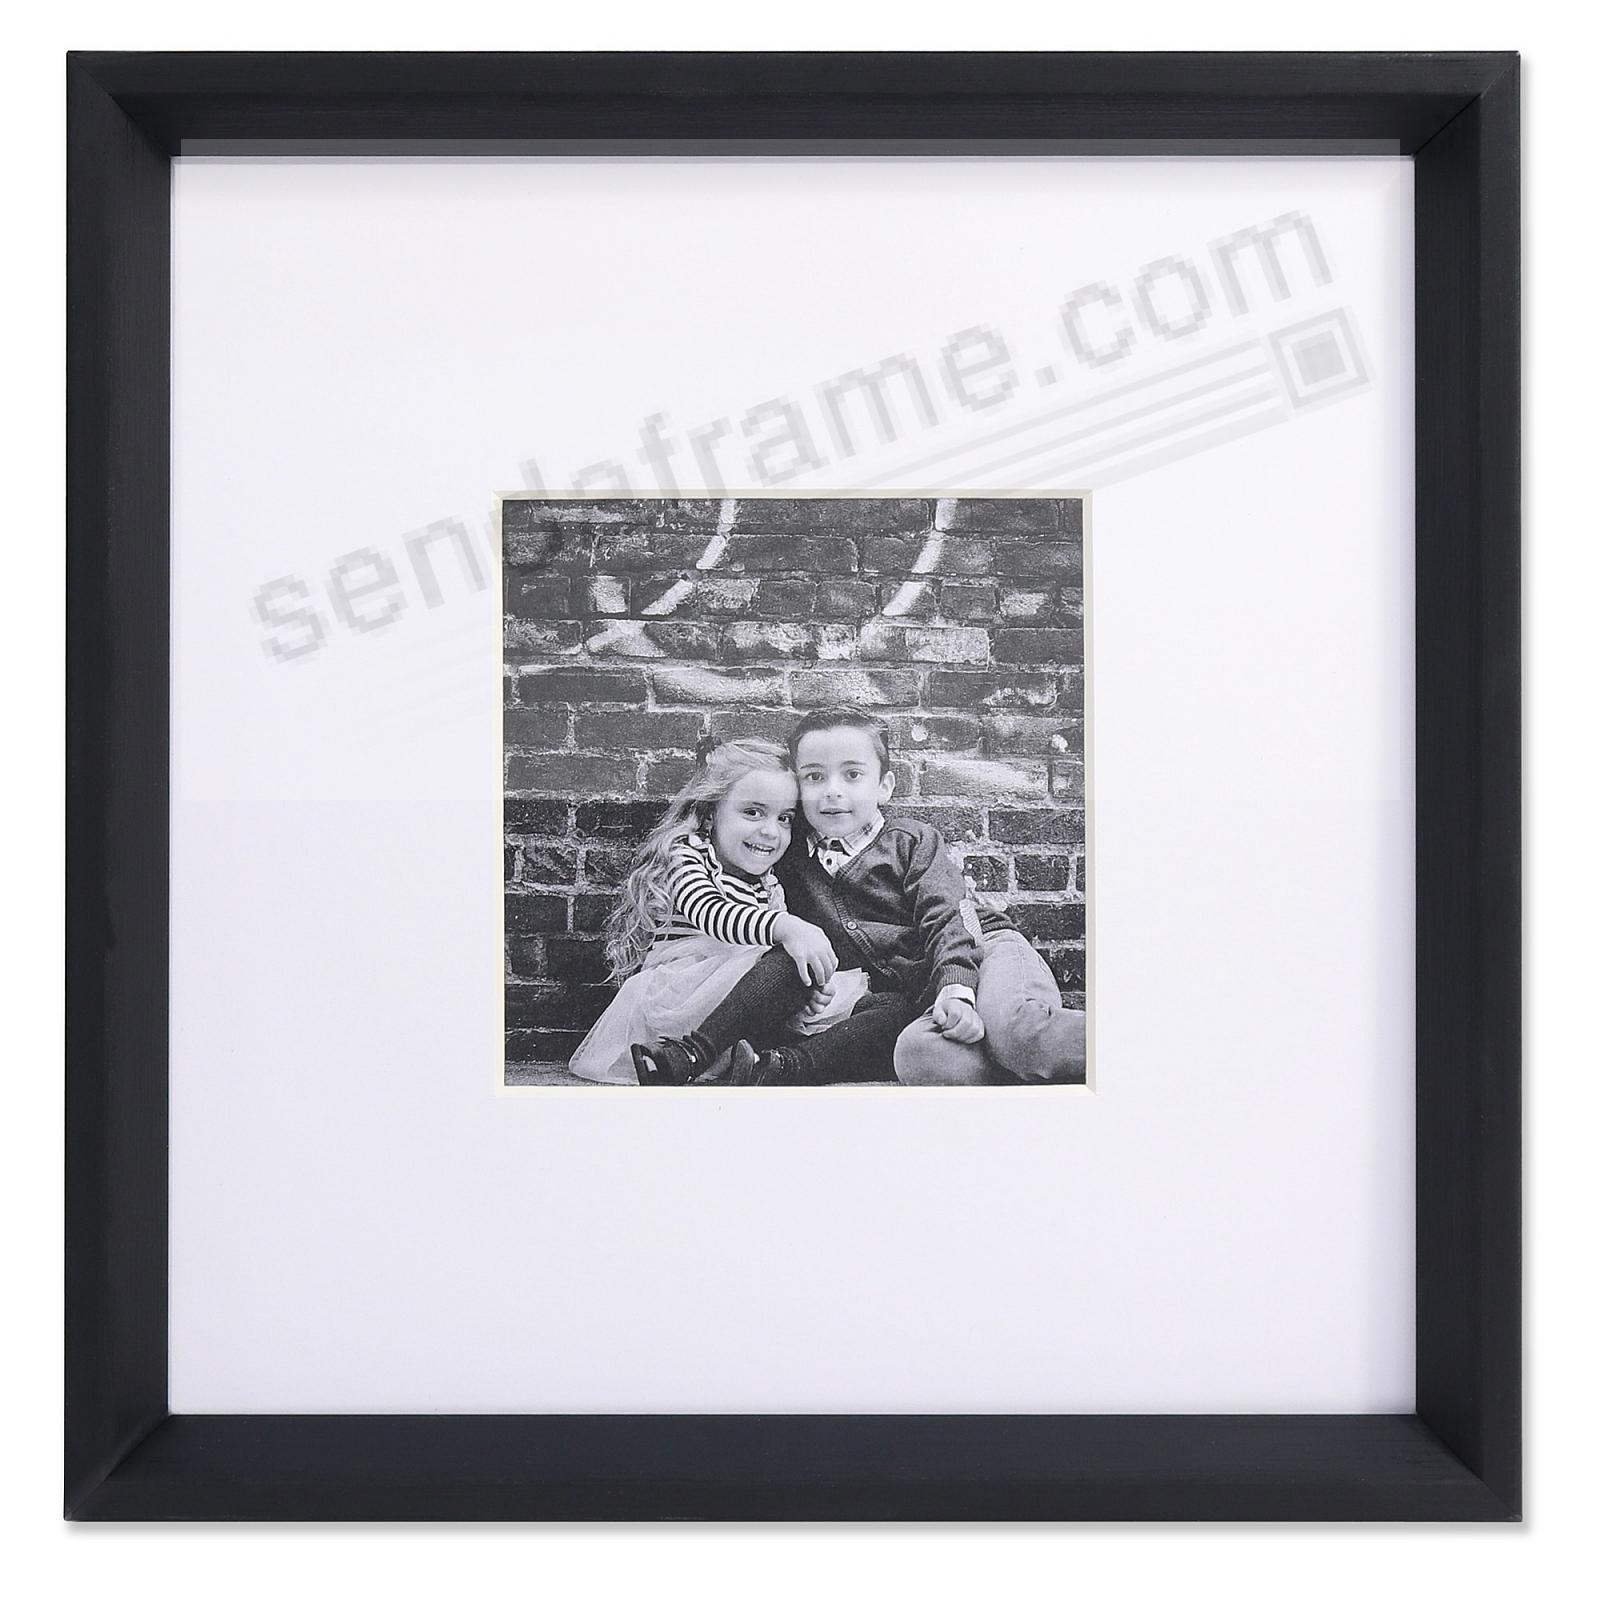 GALLERY BLACK matted 5x5 by Lawrence®